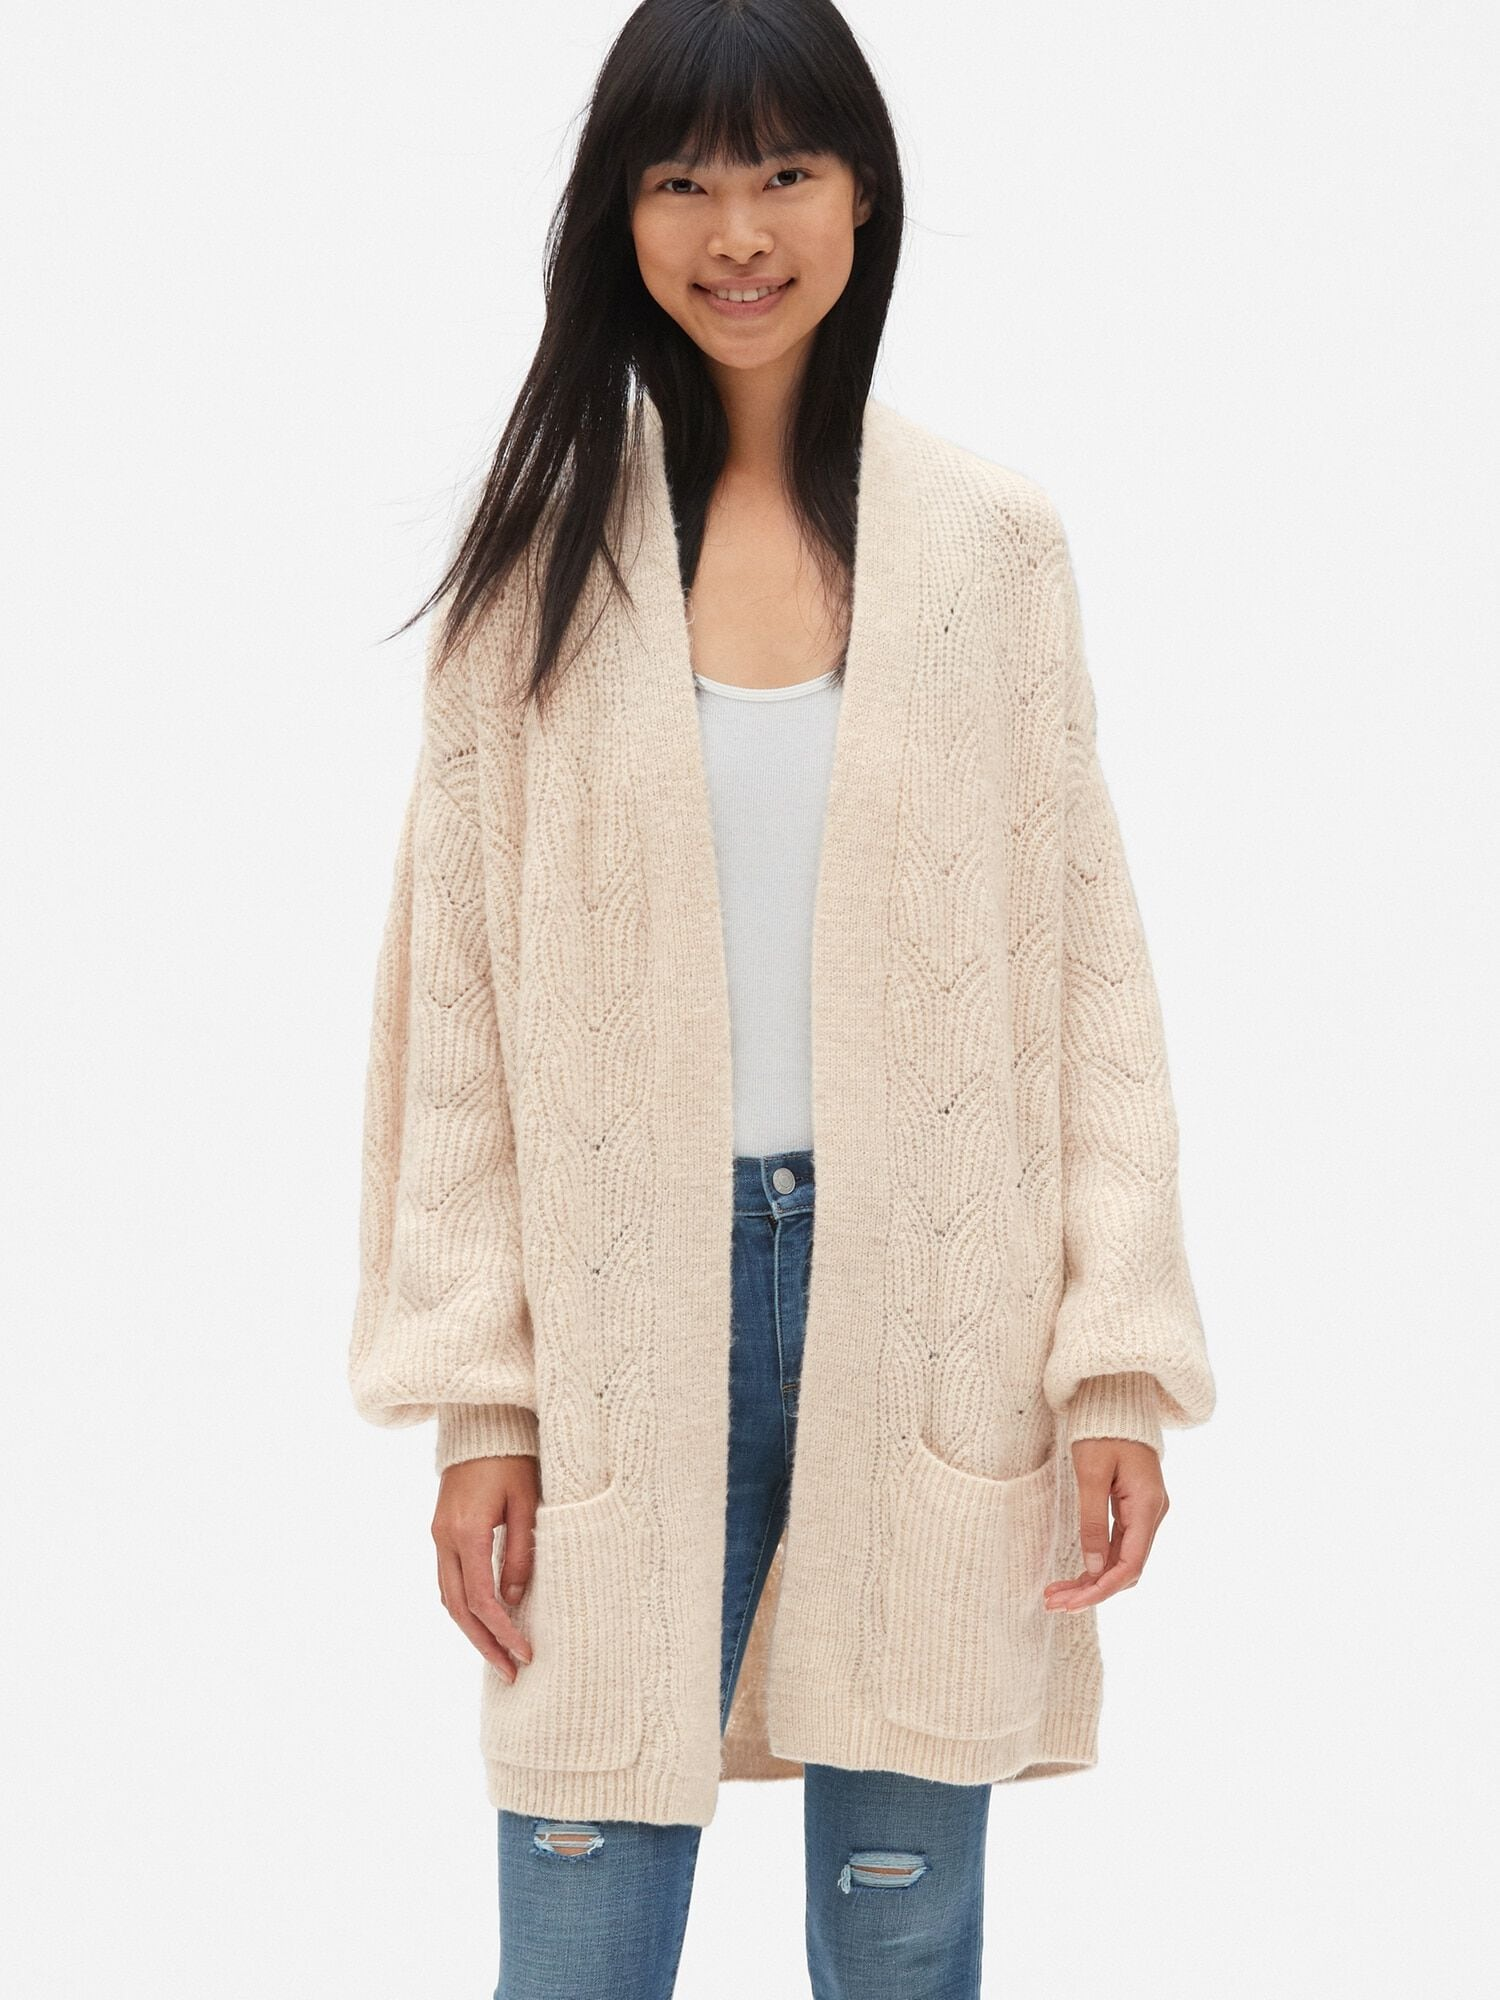 49c63474f34 Brushed Pointelle Open-Front Cardigan Sweater